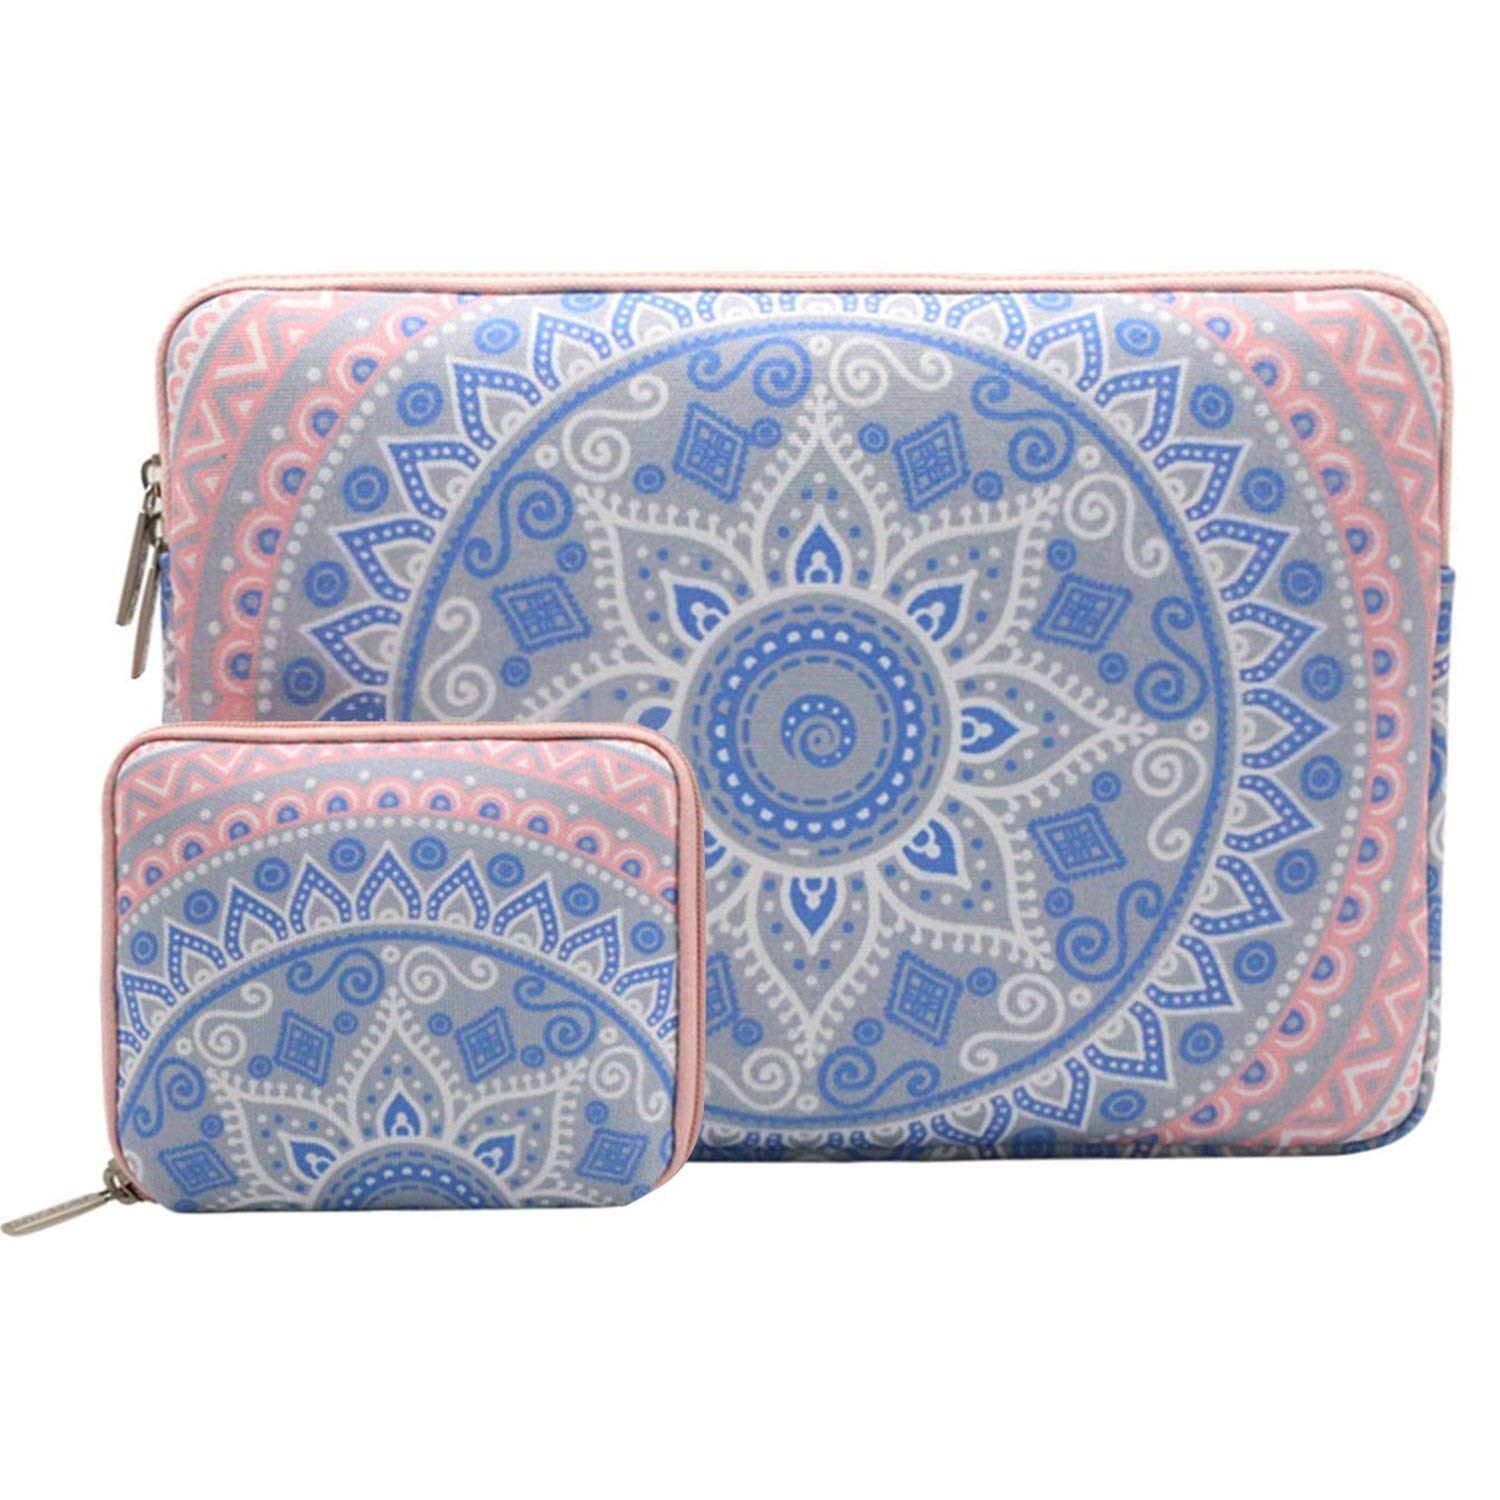 MOSISO Laptop Sleeve Bag Compatible 13-13.3 Inch MacBook Pro, MacBook Air, Notebook Computer with Small Case, Canvas Fabric Mandala Pattern Protective Cover, Blue and Pink